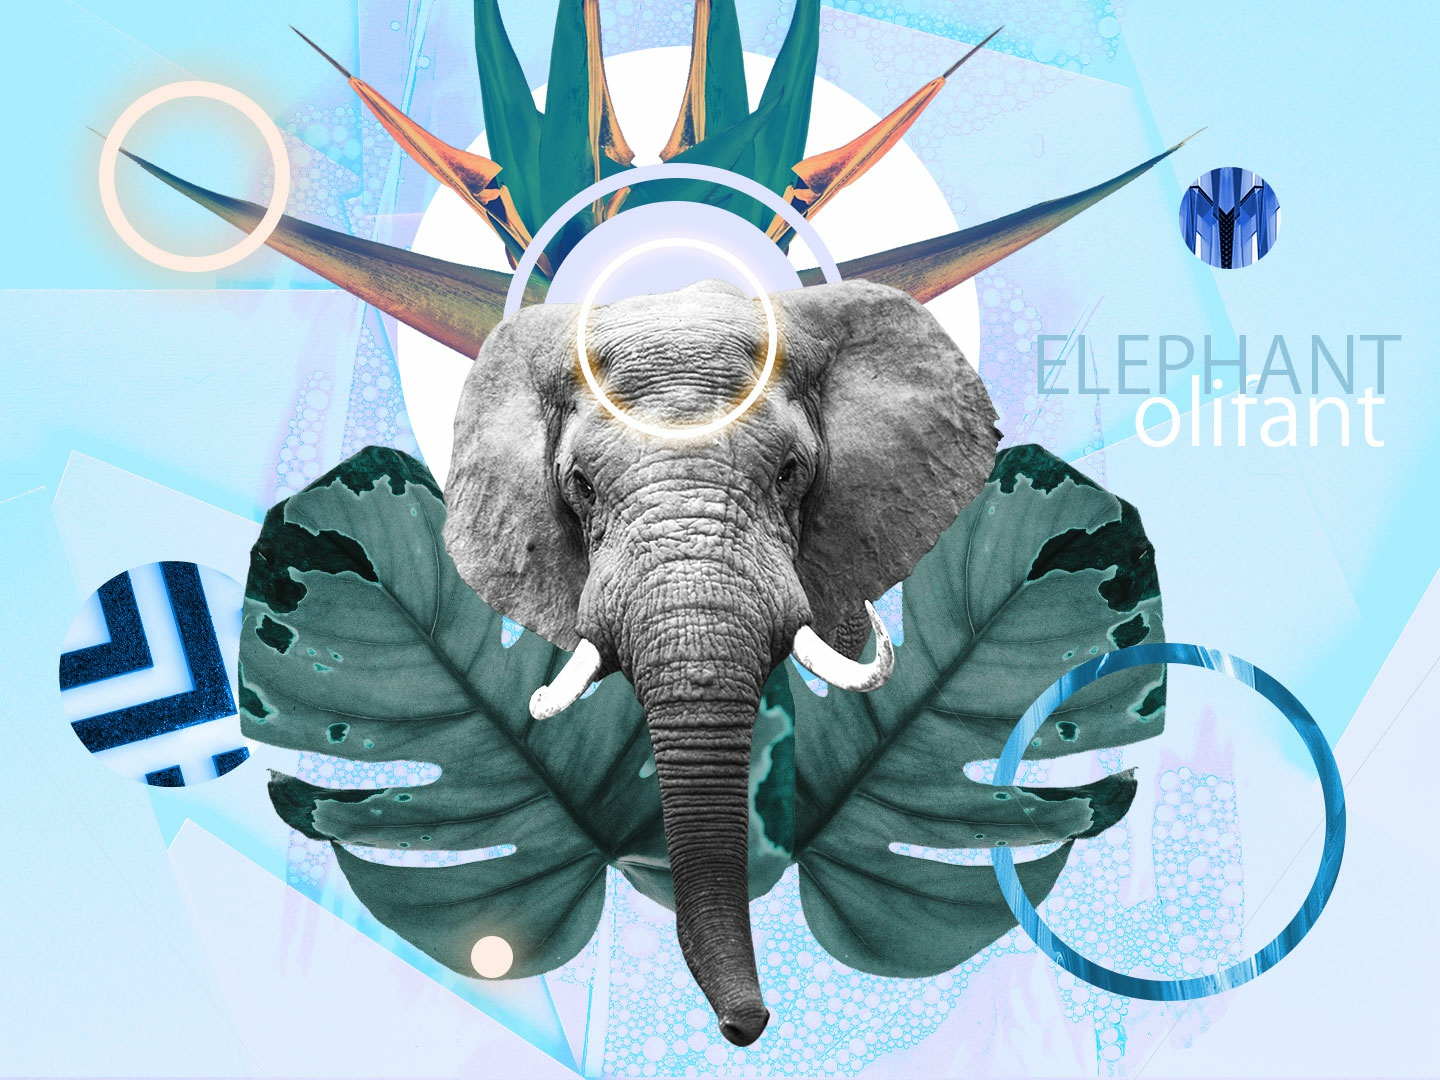 Collage 13 - Relax & Let Go chill art decor elephant african blue concept collage warm up creative illustration design